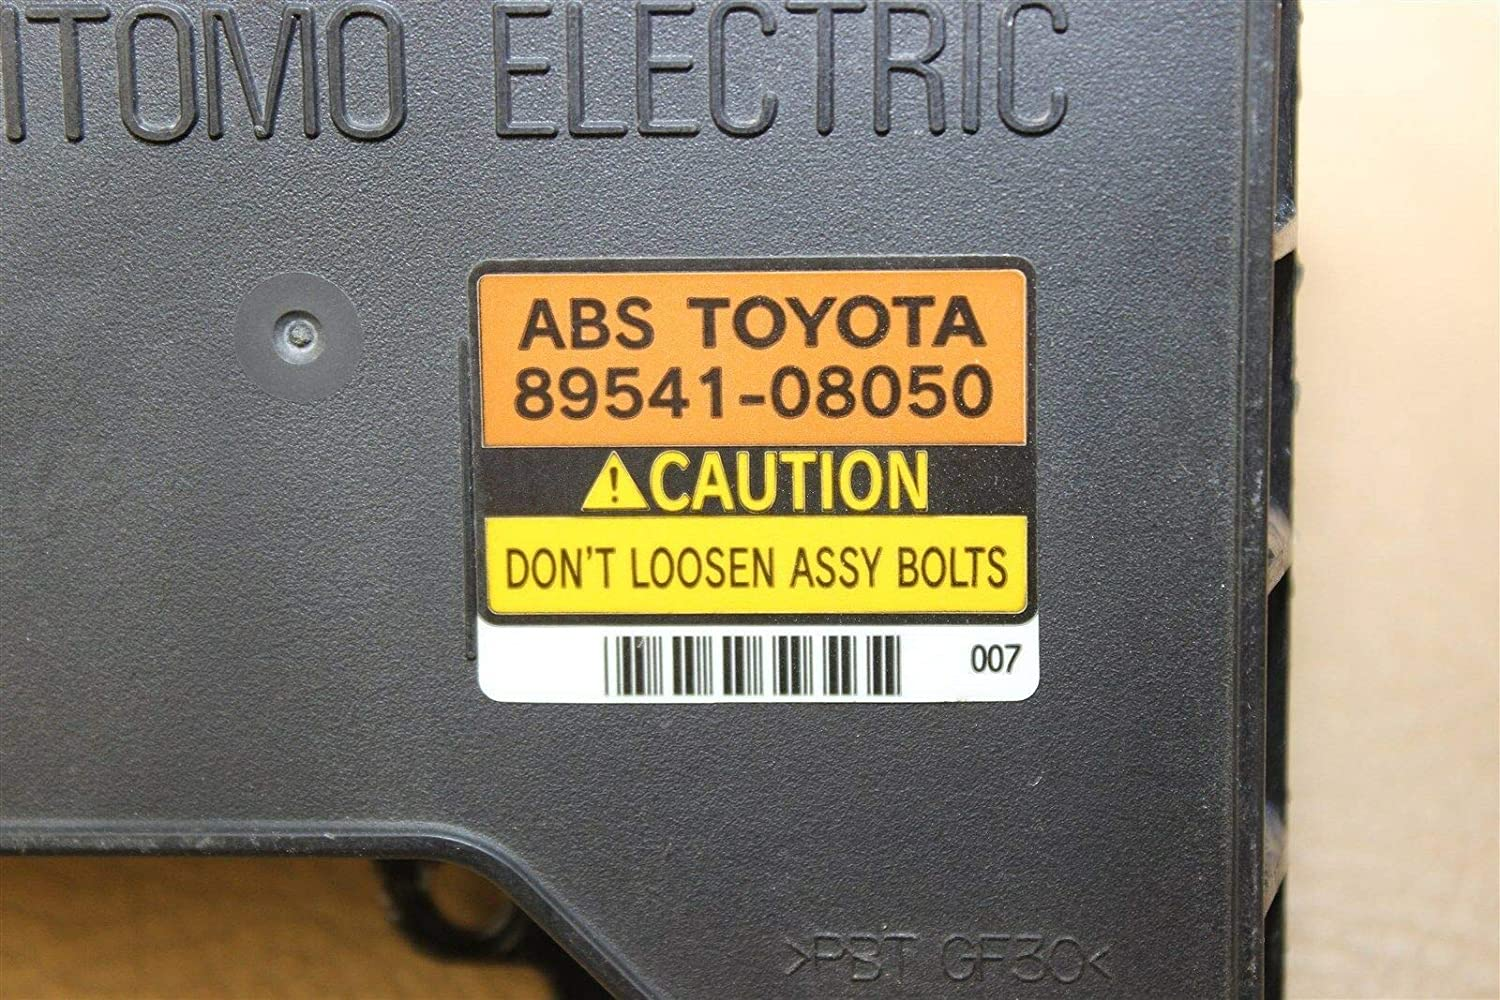 04 05 06 TOYOTA SIENNA ABS ANTI-LOCK BRAKE CONTROL MODULE 89541-08050 REMAN